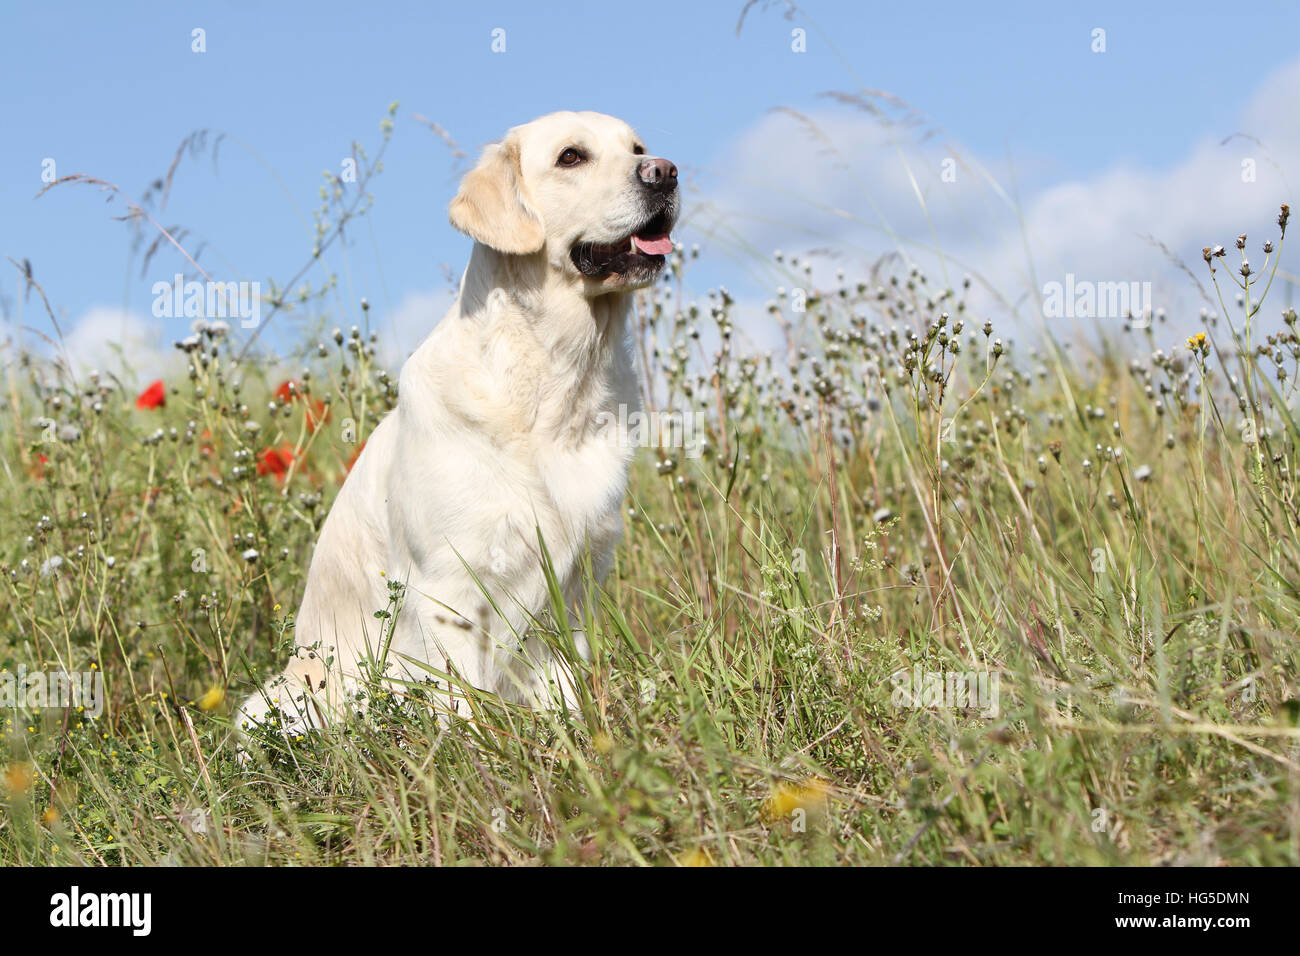 Dog Golden Retriever adult sitting in a meadow - Stock Image